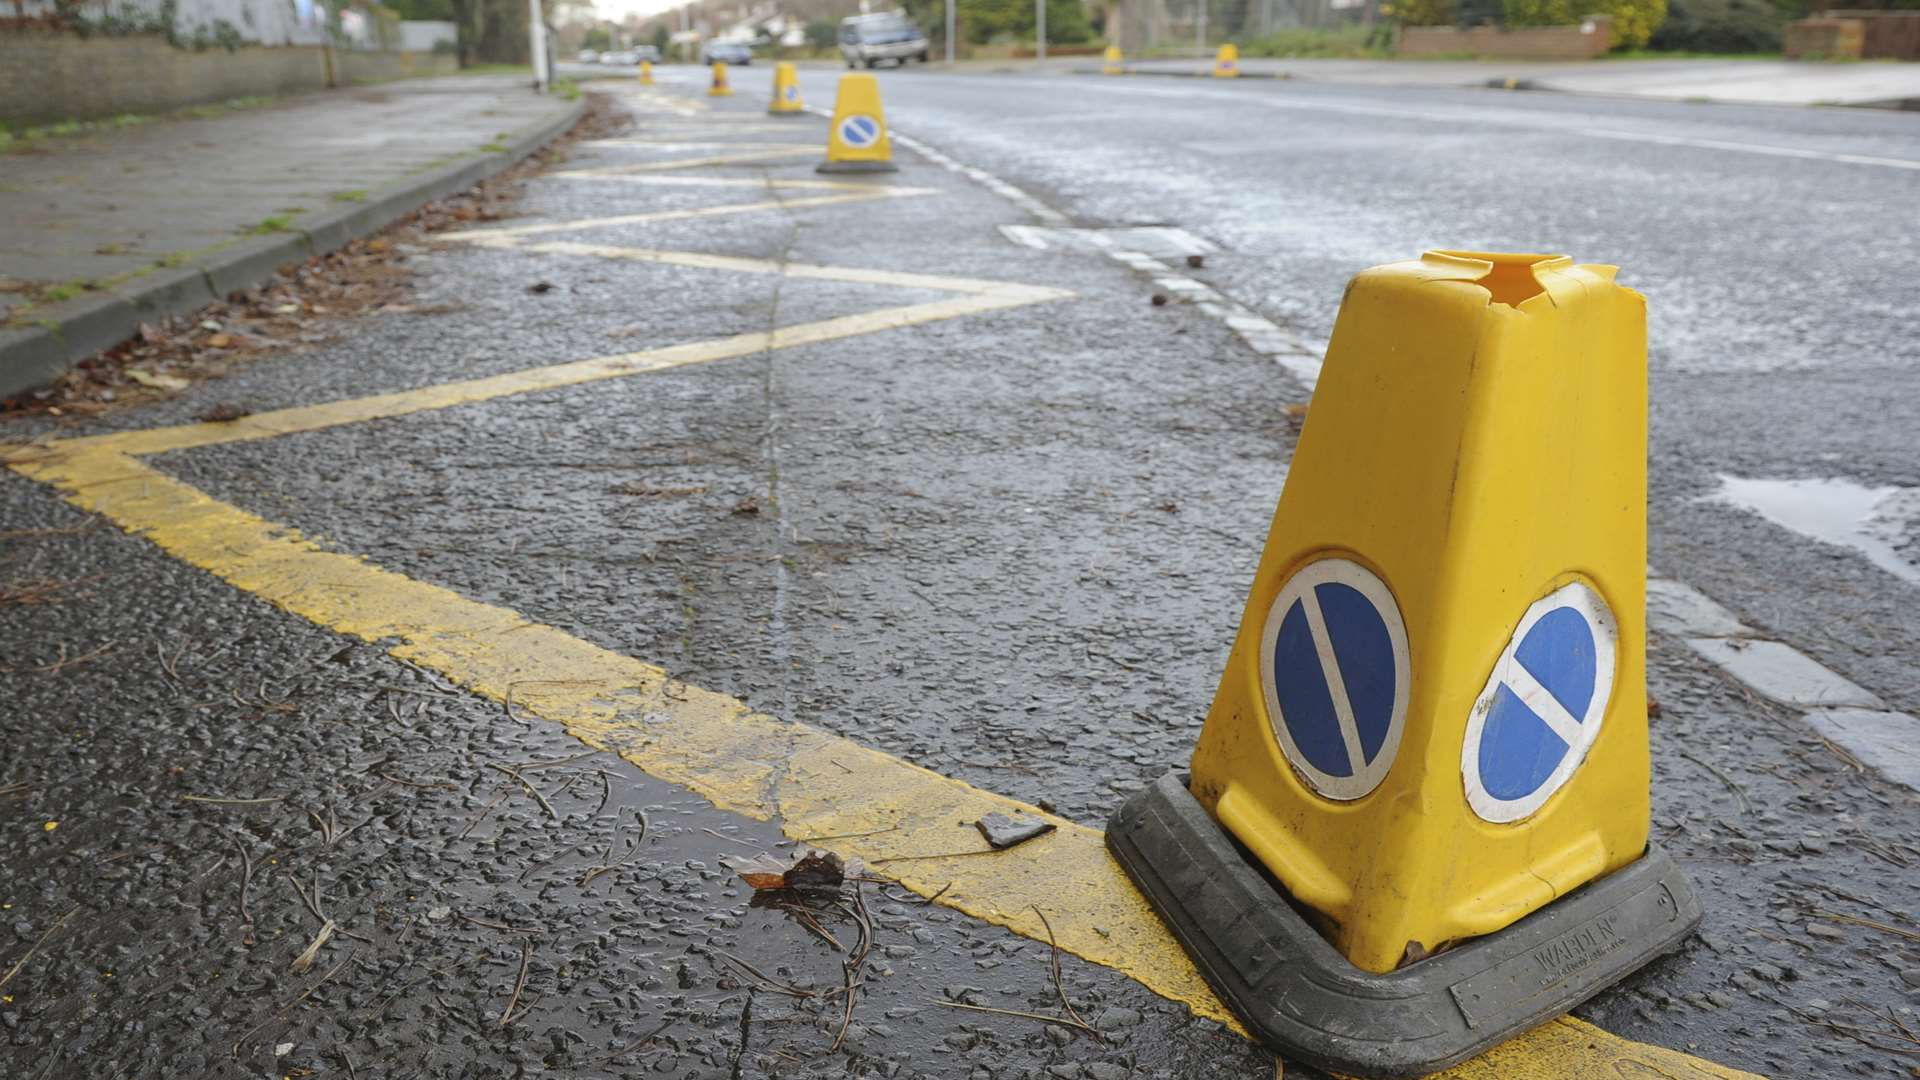 Zig Zag lines and cones near a school. Stock image